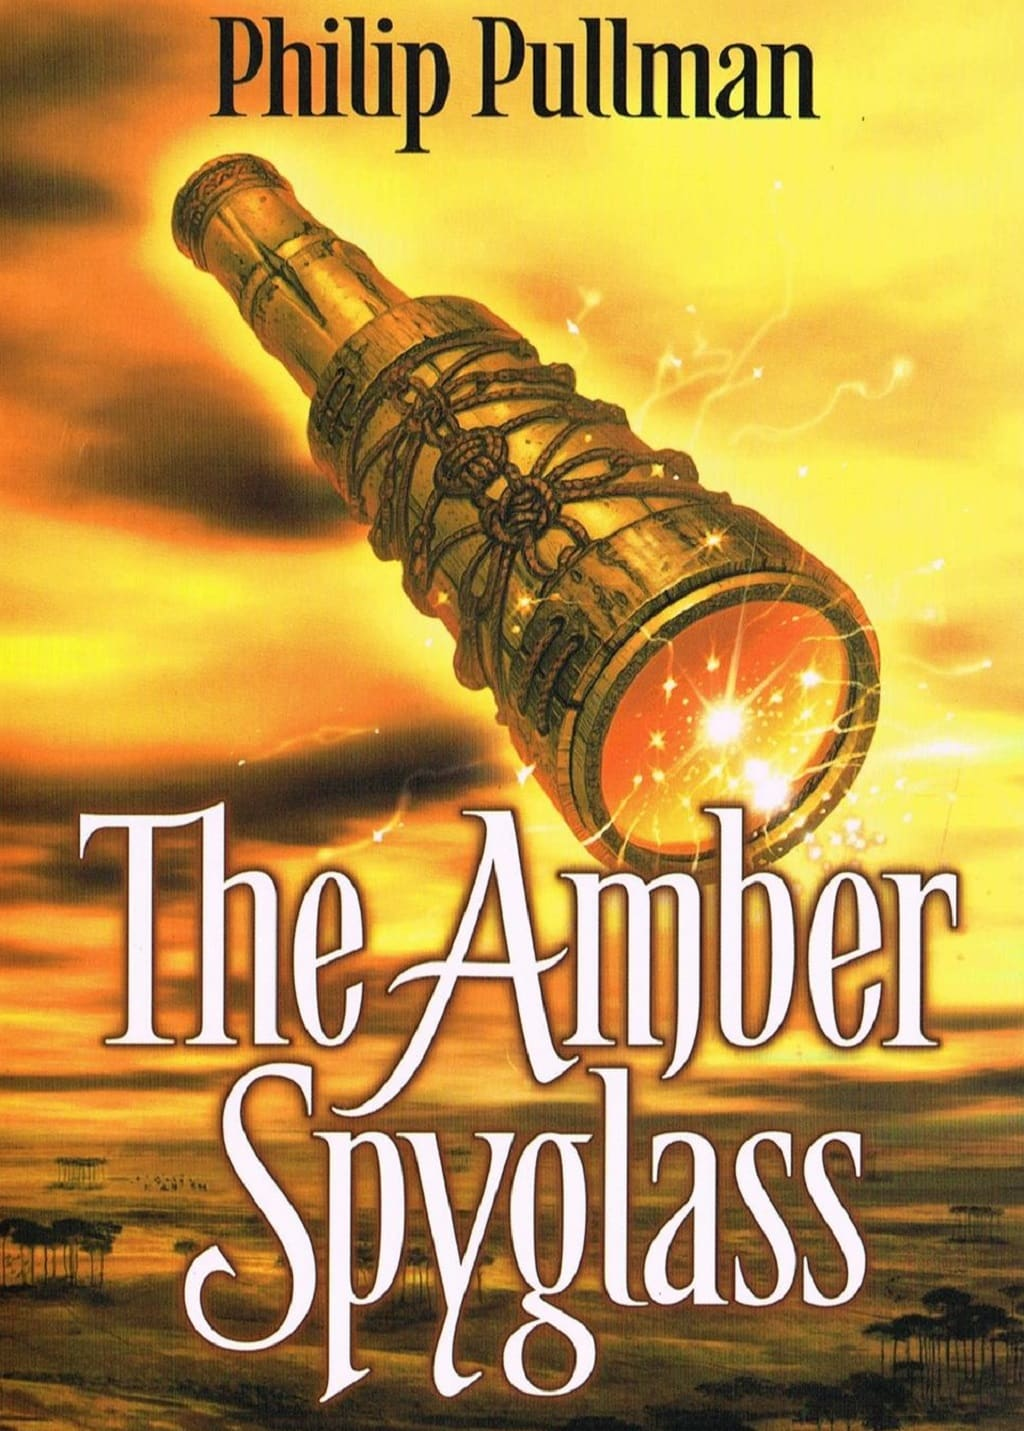 The Amber Spyglass Audiobook Free Download